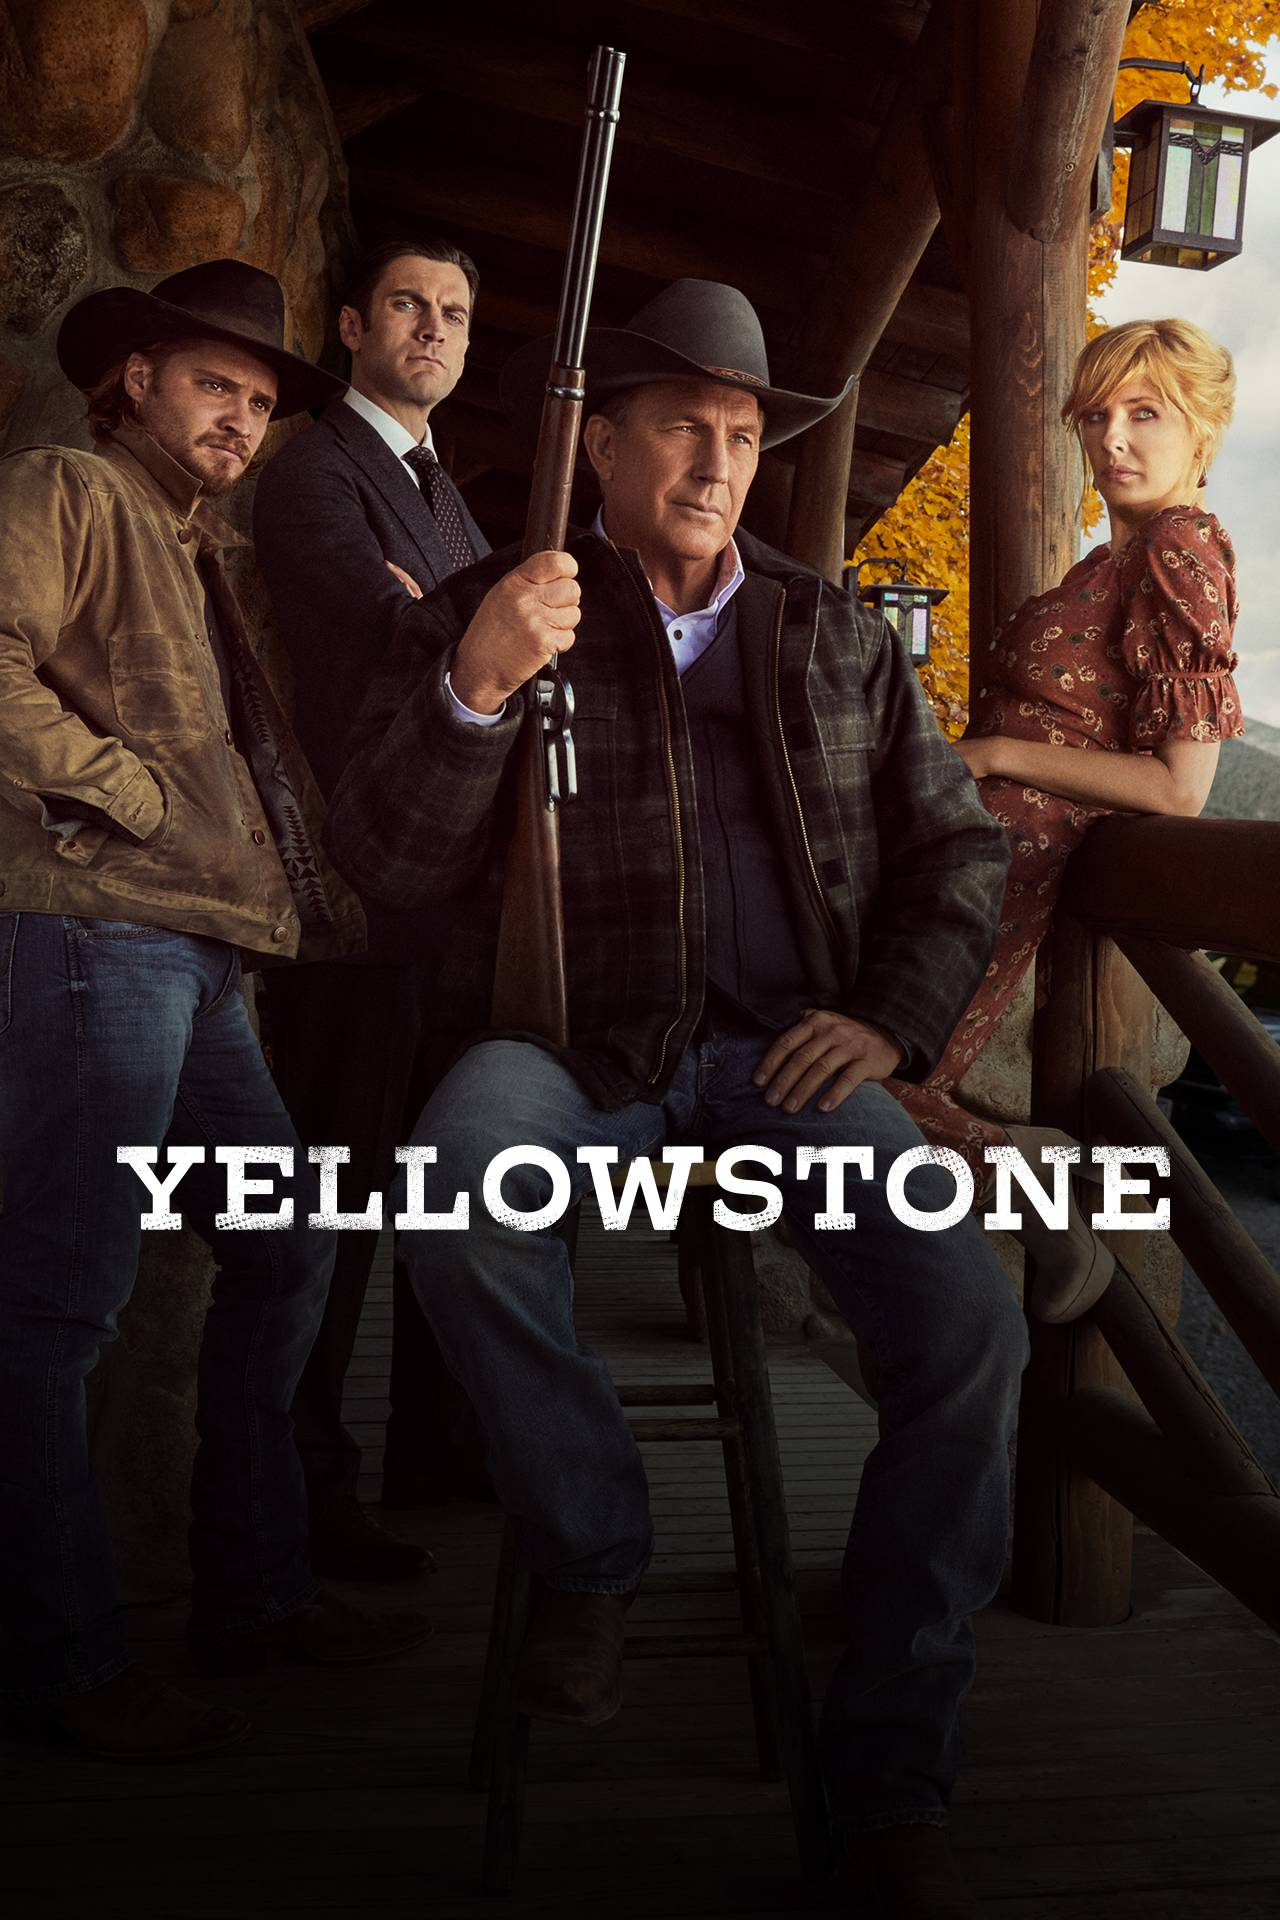 Yellowstone - Season 2 - TV Series | Paramount Network